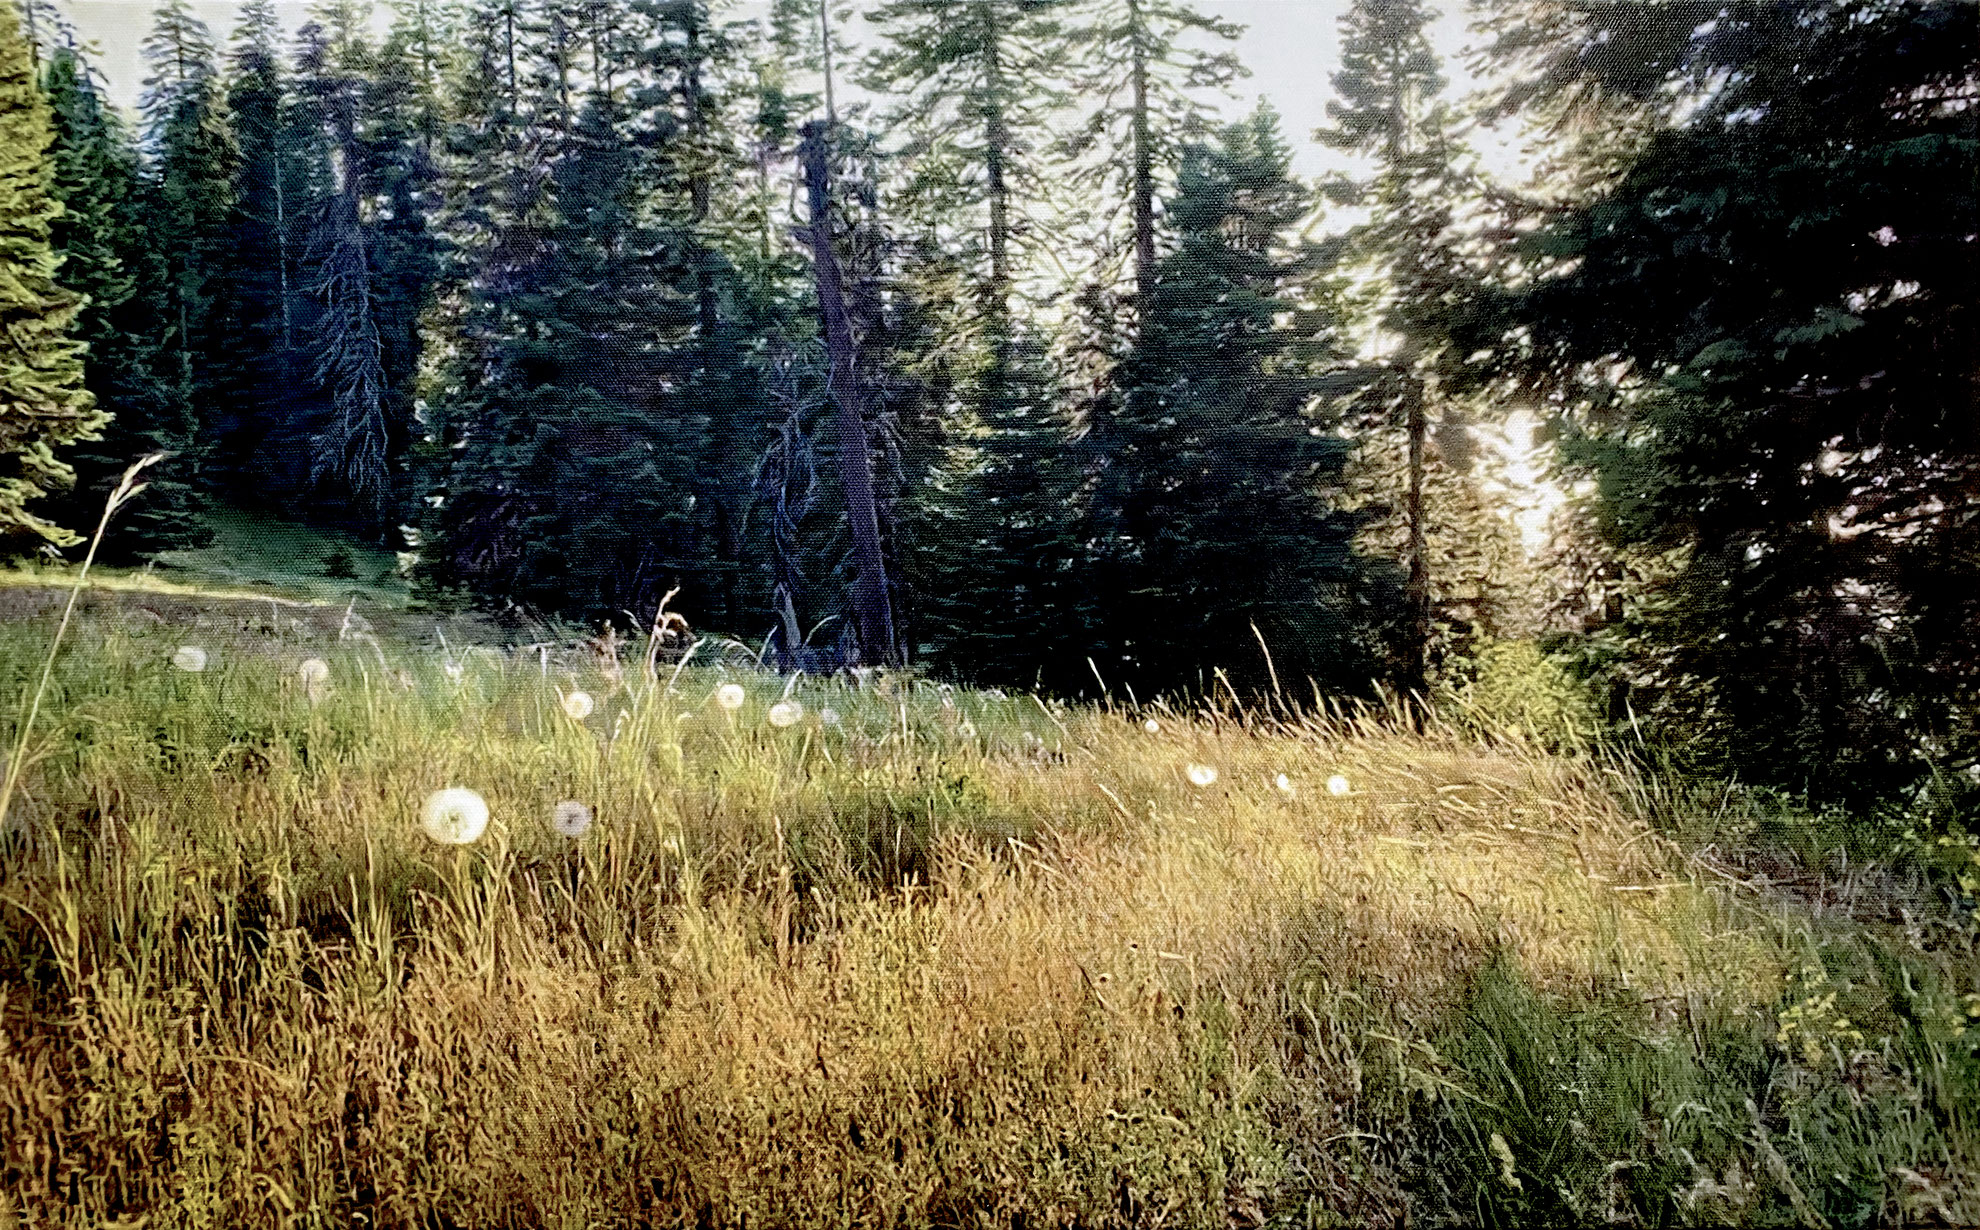 Photorealistic painting of a meadow